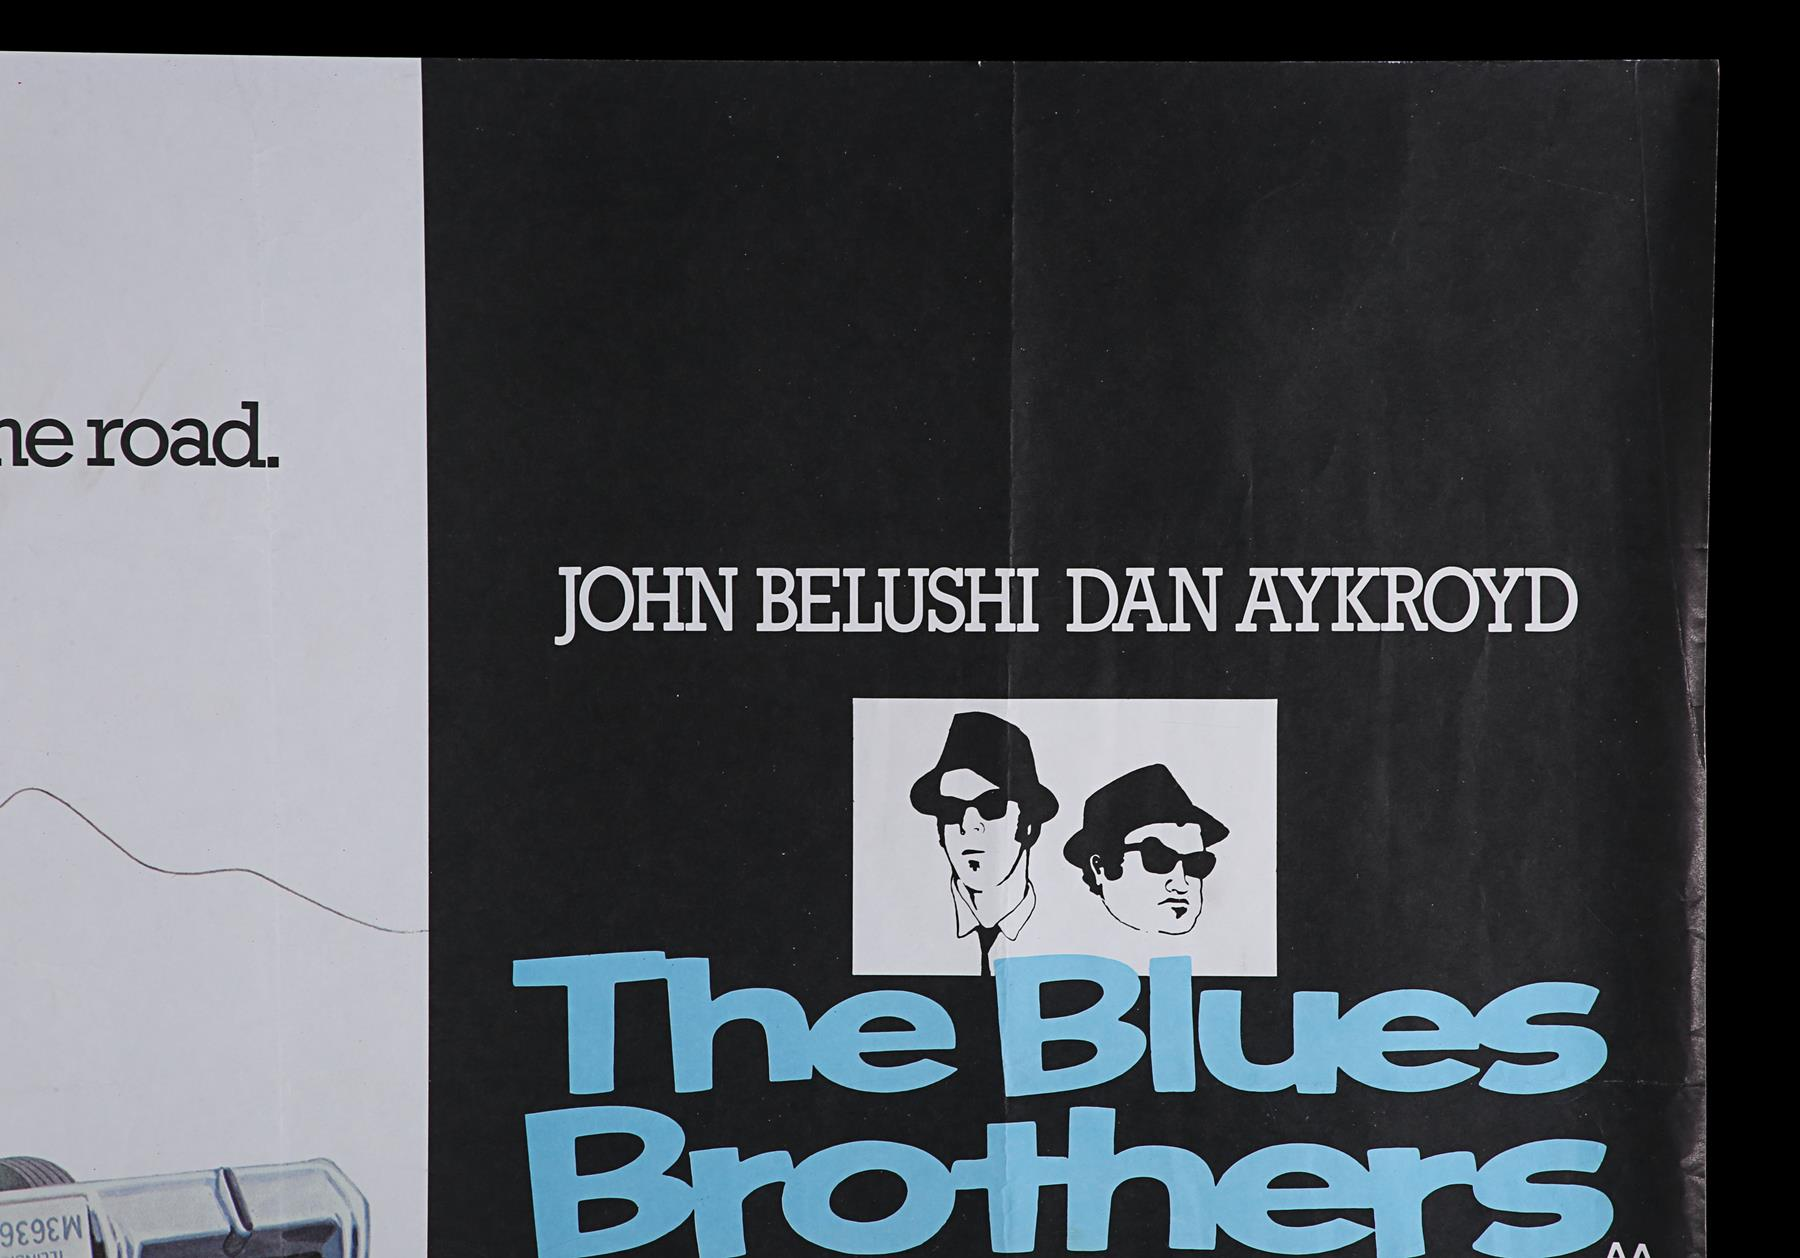 THE BLUES BROTHERS (1980) - UK Quad, 1980 - Image 3 of 6